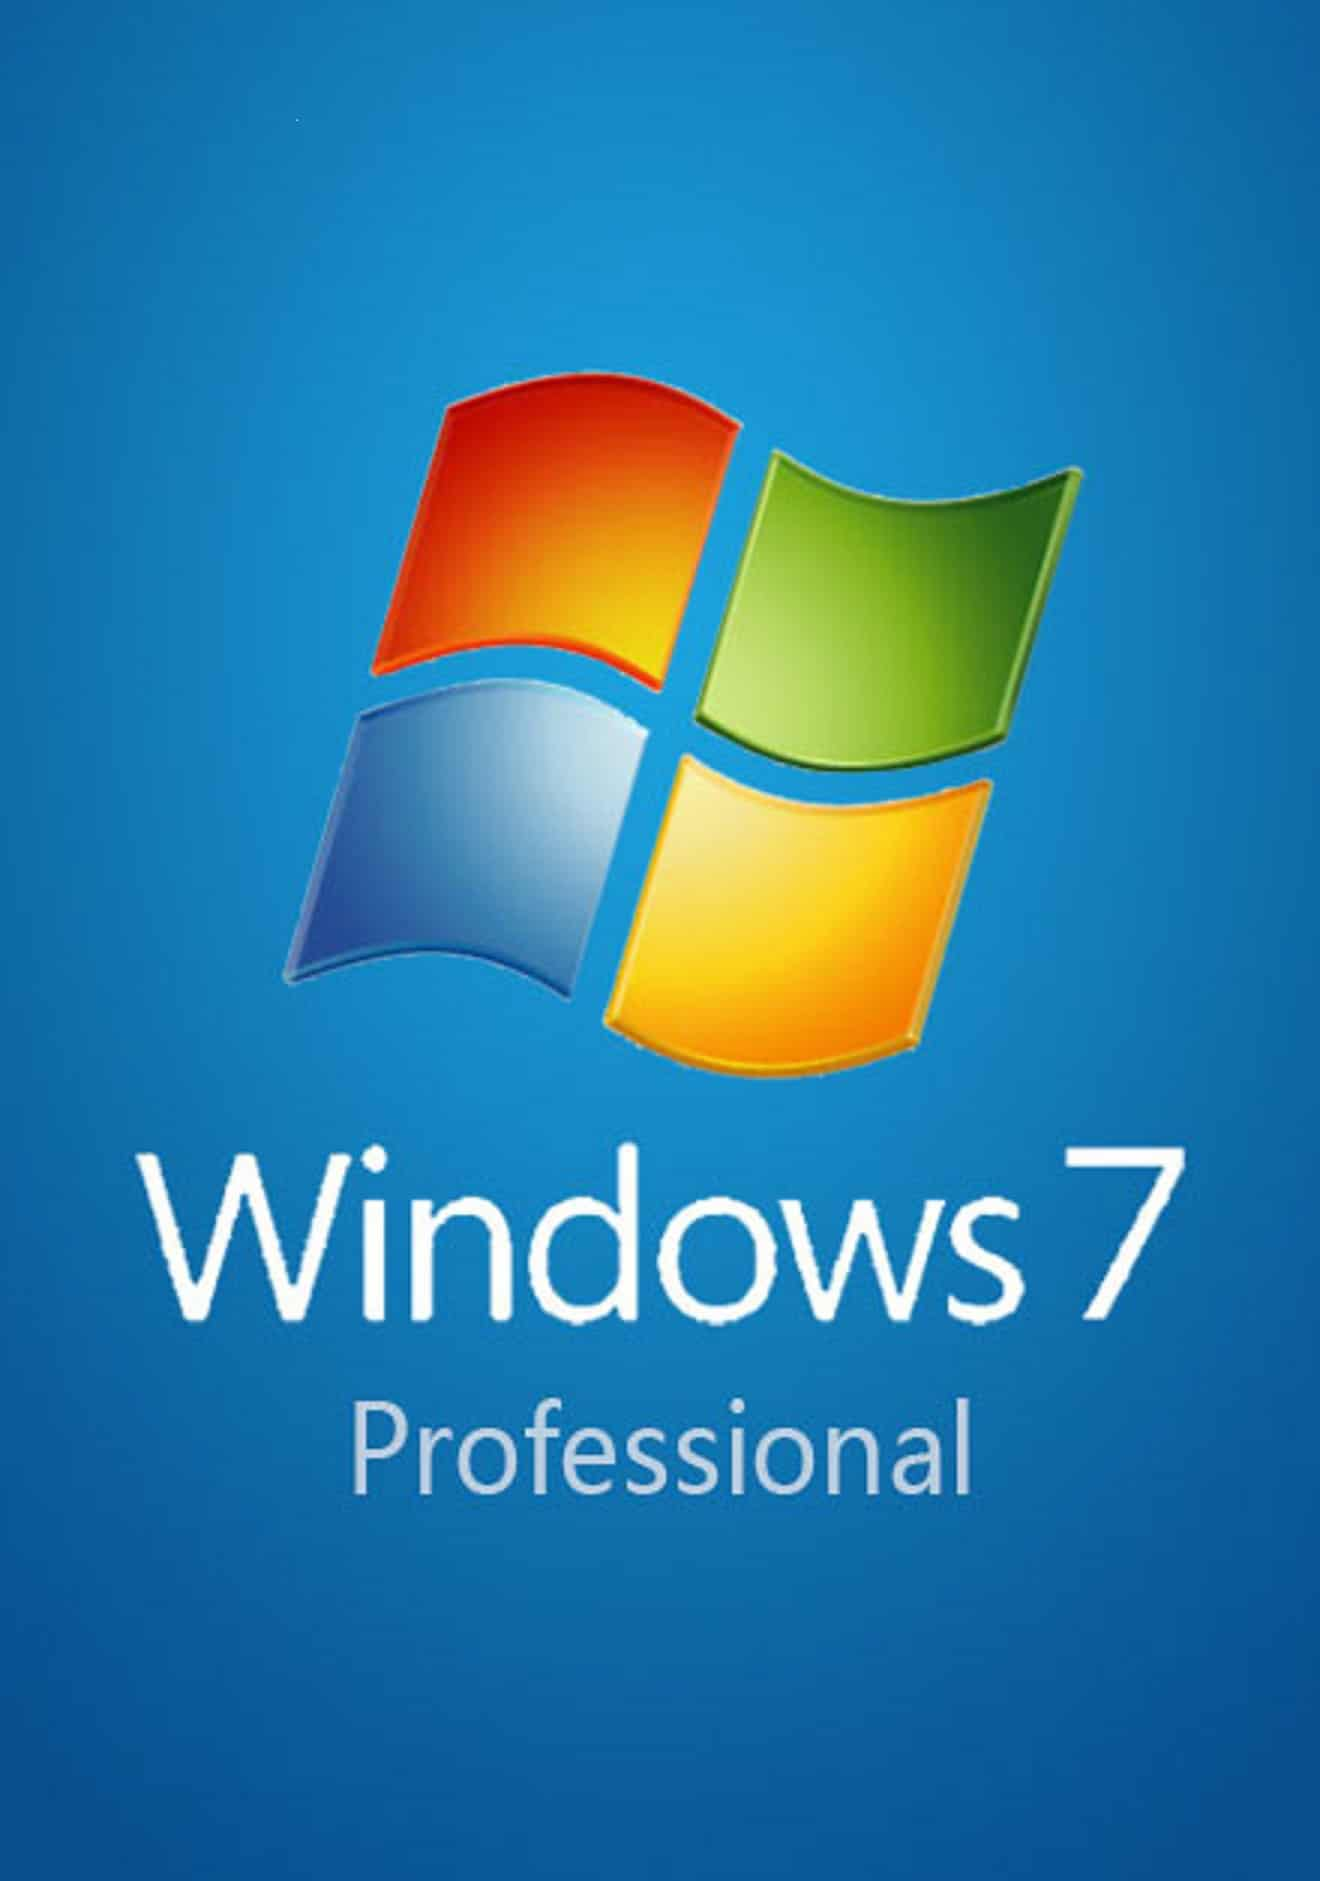 Requisitos Para Descargar E Instalar El Windows 7-8